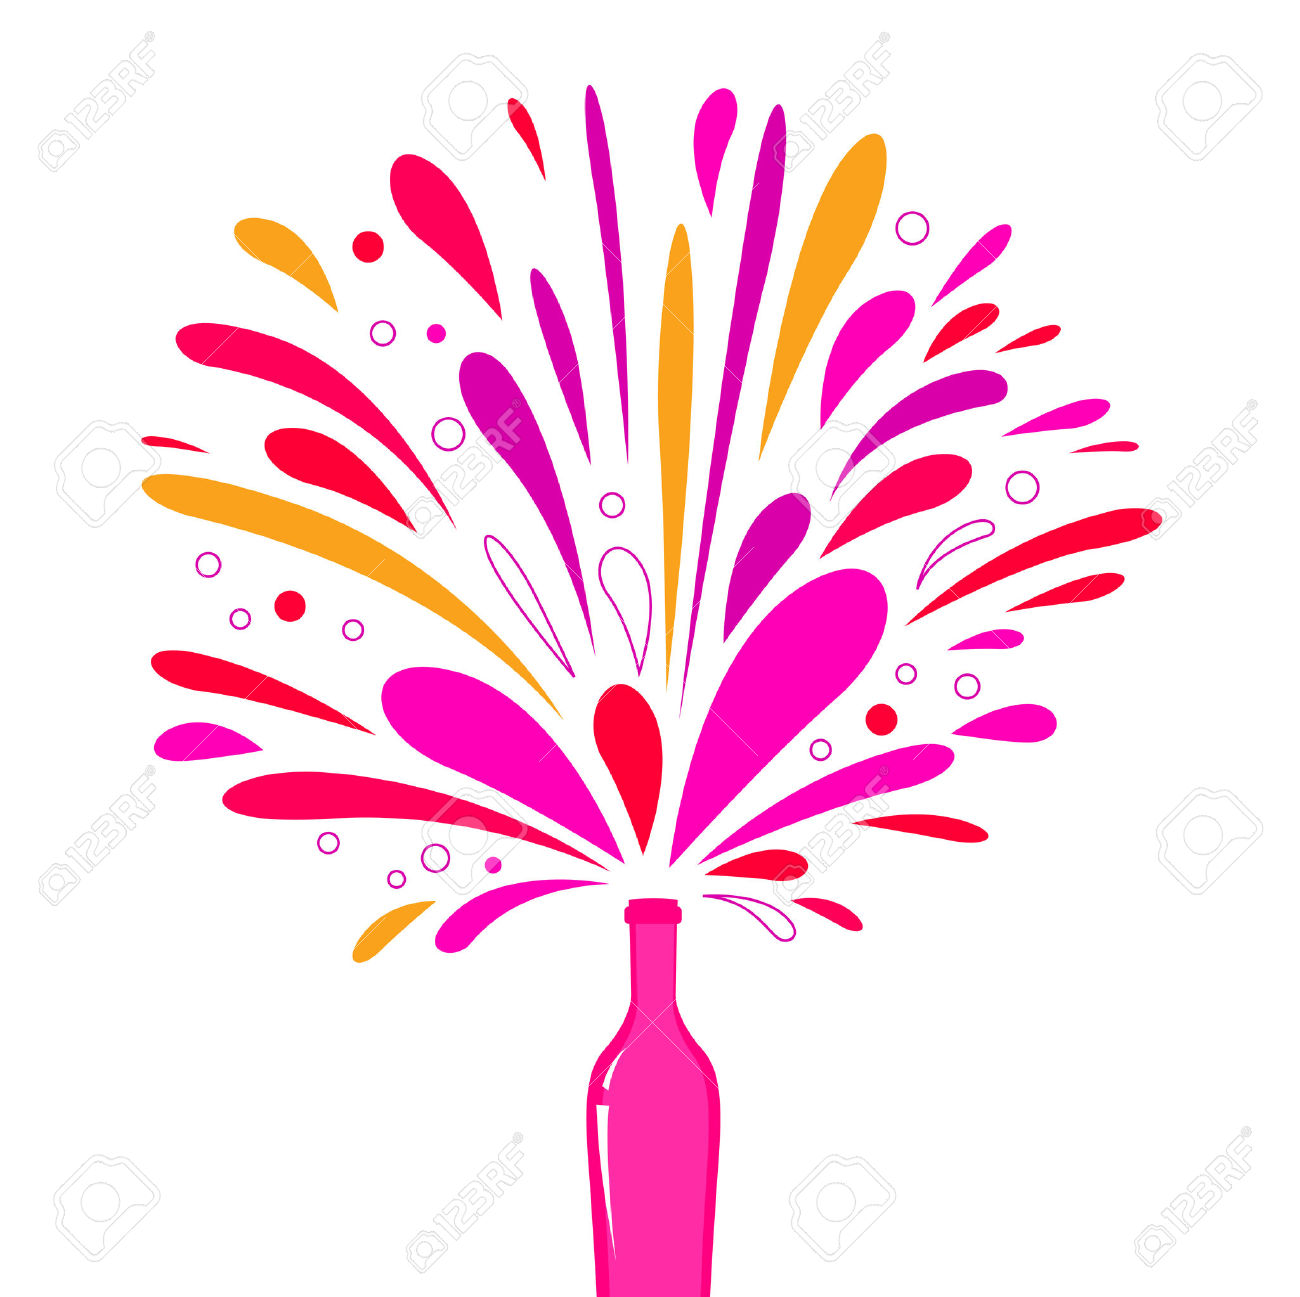 Champagne Explosion. Champagne Bottle Pop And Fizz Vector Illustration..  Royalty Free Cliparts, Vectors, And Stock Illustration. Image 103060275.